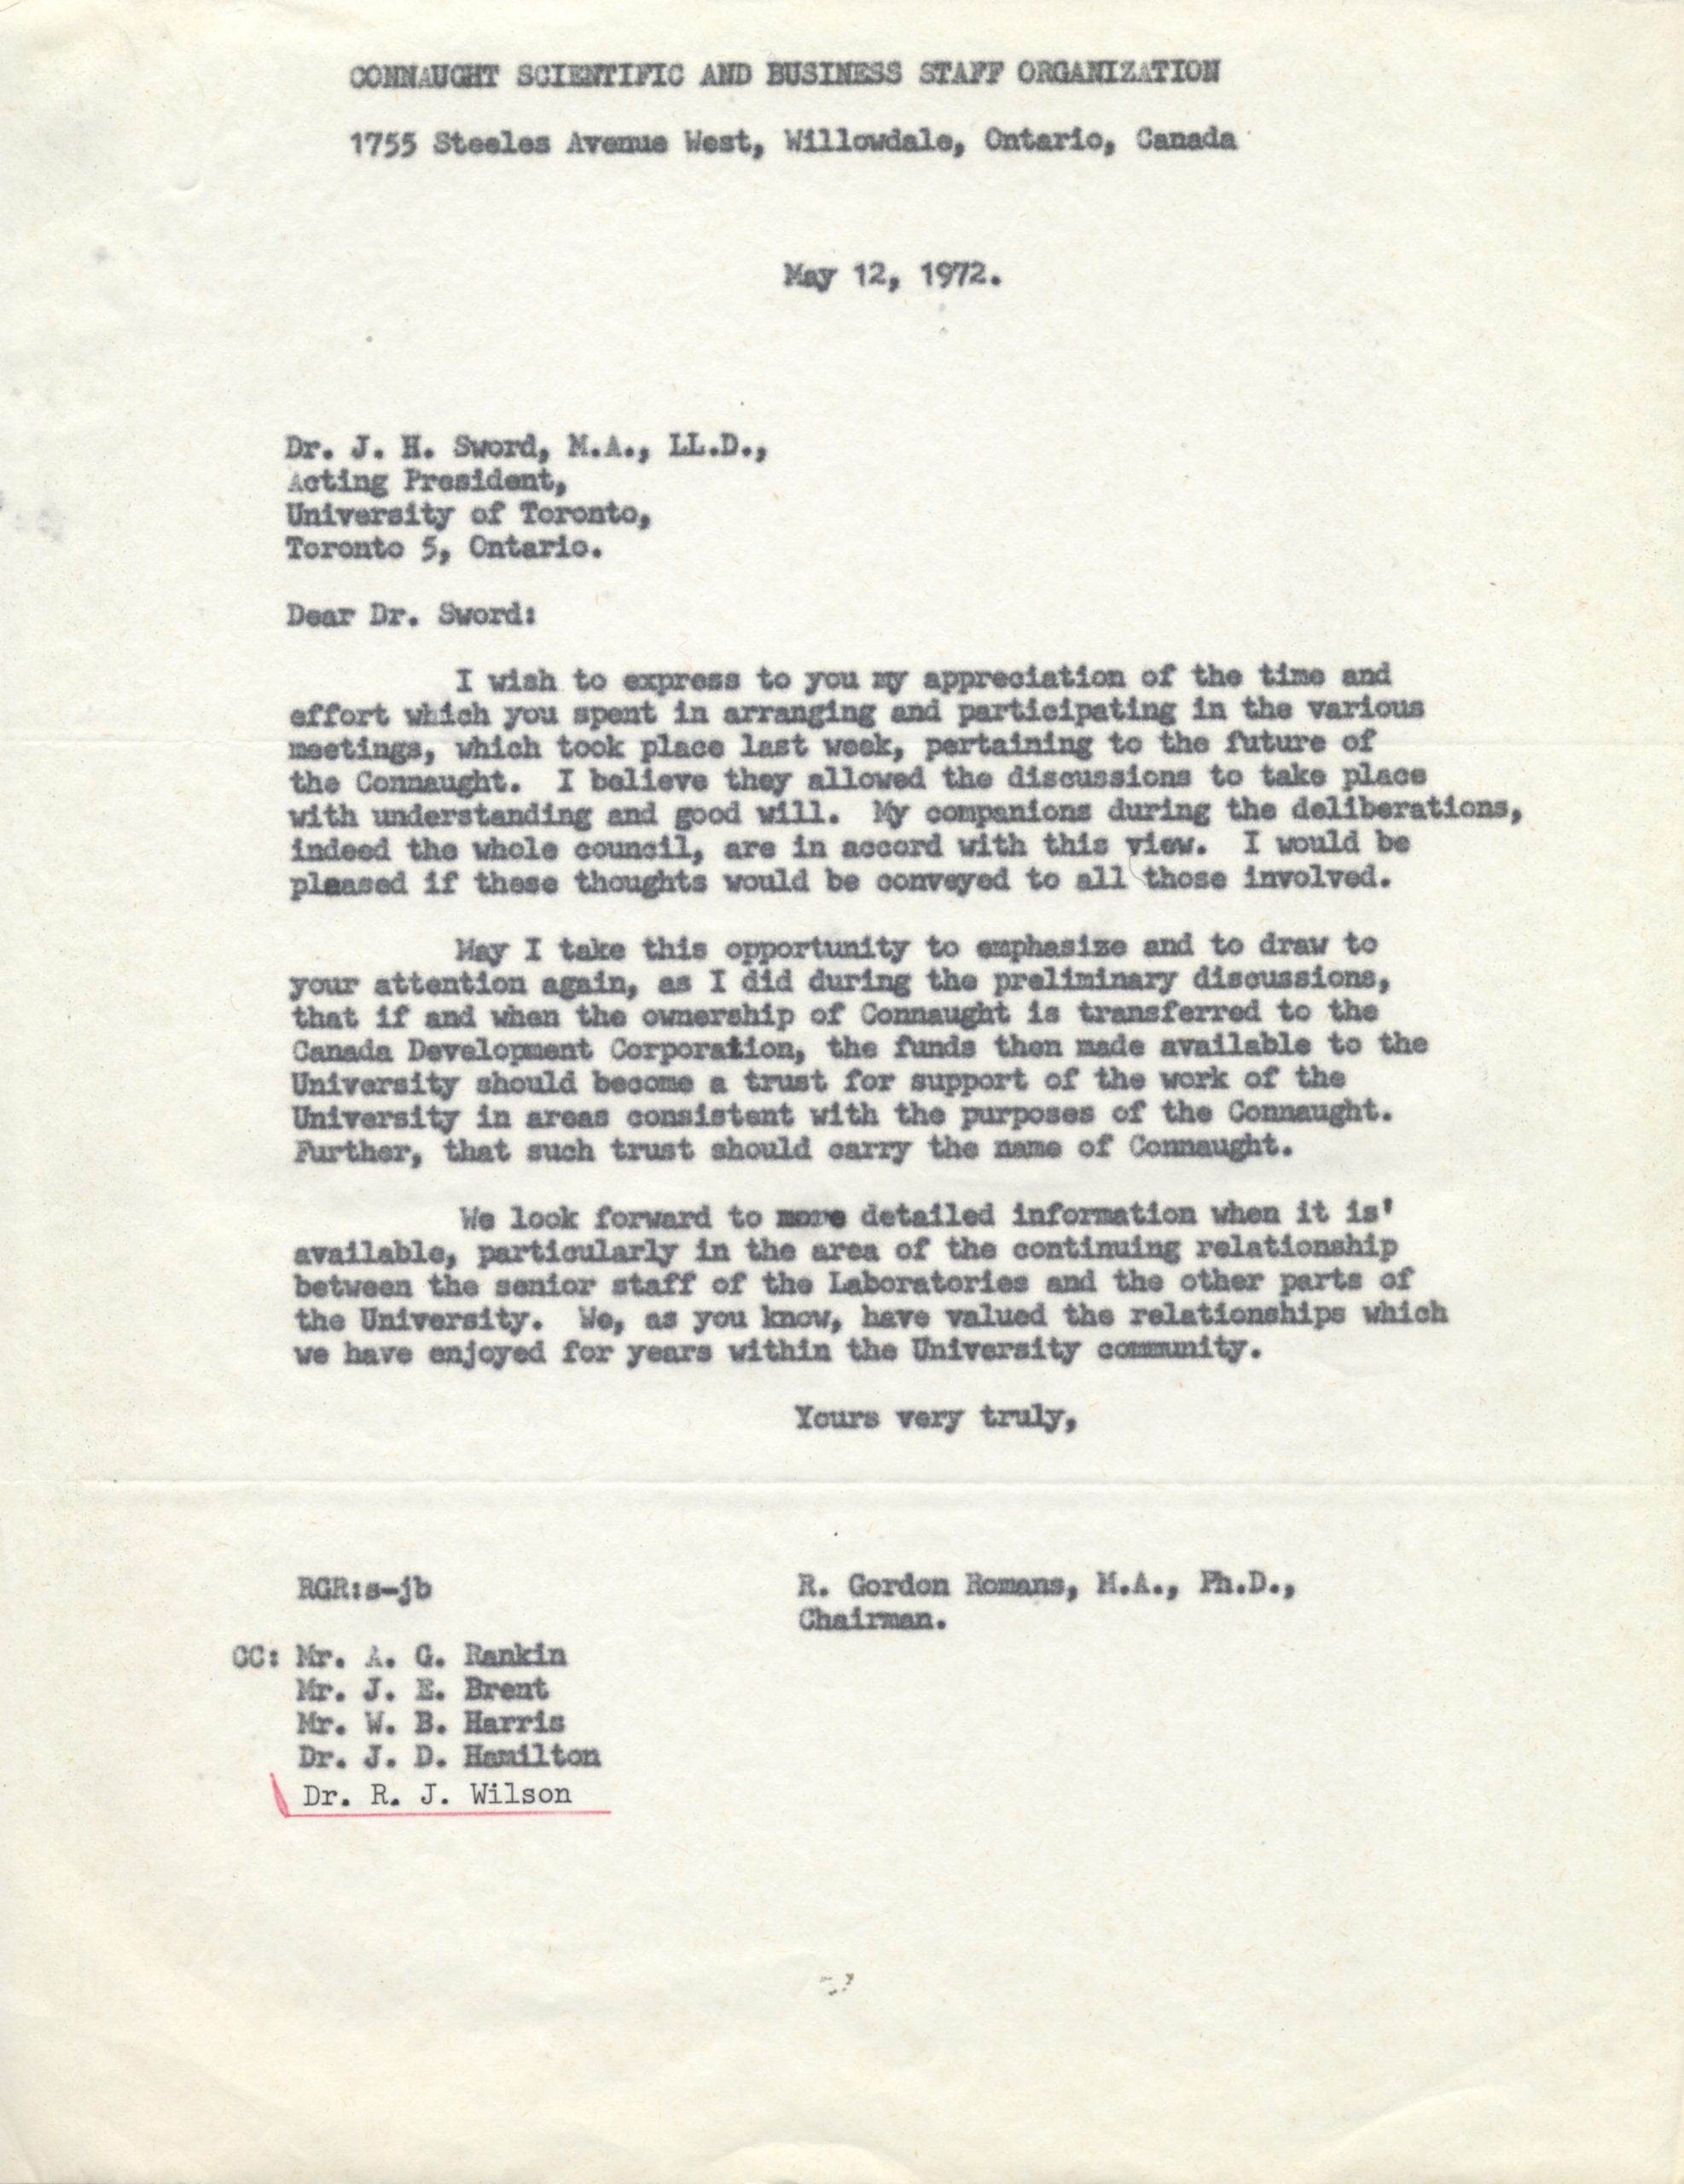 "Letter dated May 12, 1972, from Dr. R. Gordon Romans, Chairman of the Connaught Scientific and Business Staff Organization, to Dr. J.H. Sword, Acting President, University of Toronto, emphasizing the suggestion that any proceeds from the sale of Connaught Laboratories by the University should be held in trust in the name of ""Connaught""."